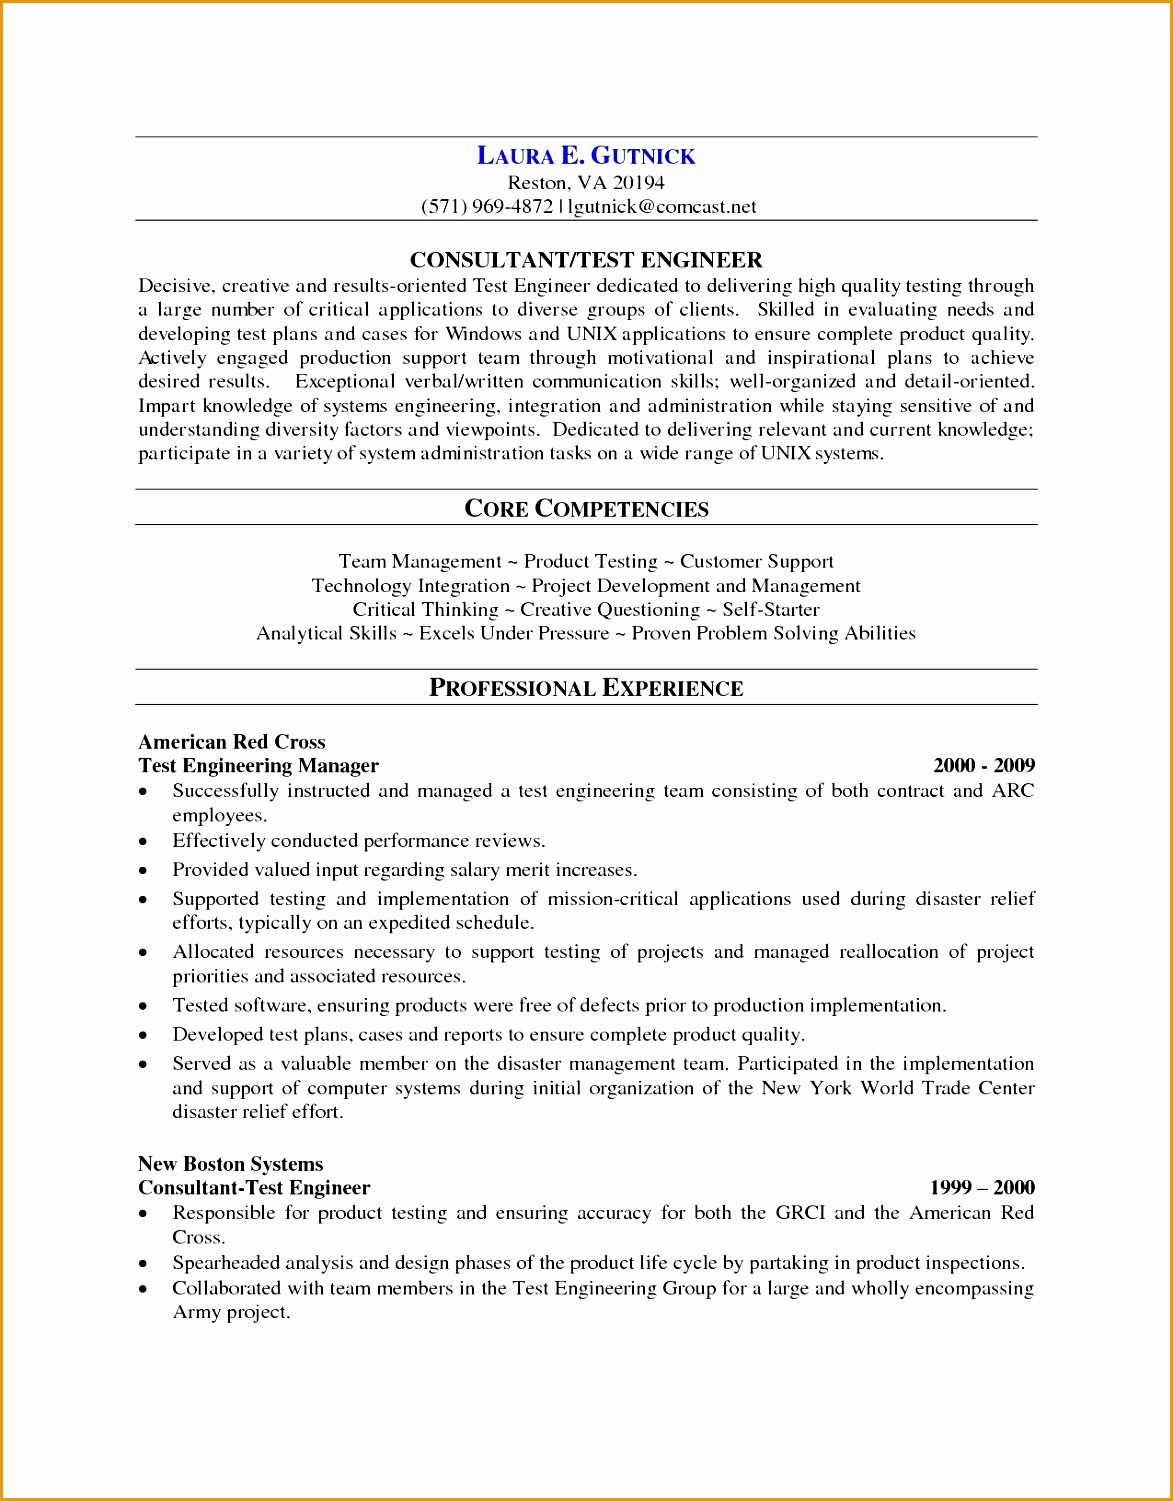 Best Resumes 2017 8 Professional Pilot Resume Template Free Samples